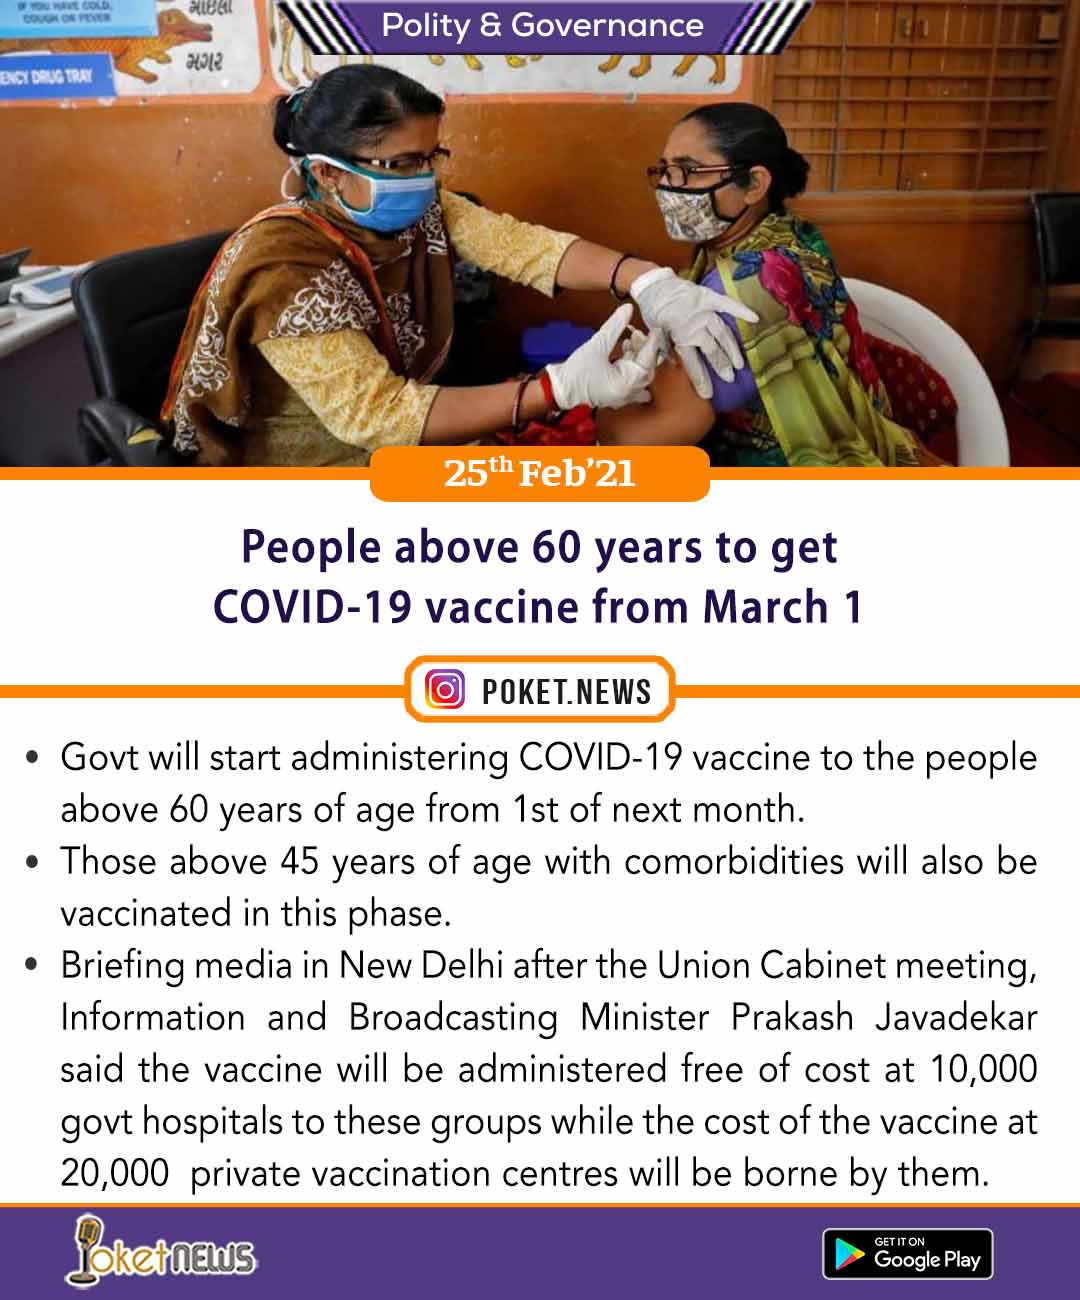 People above 60 years to get COVID-19 vaccine from March 1